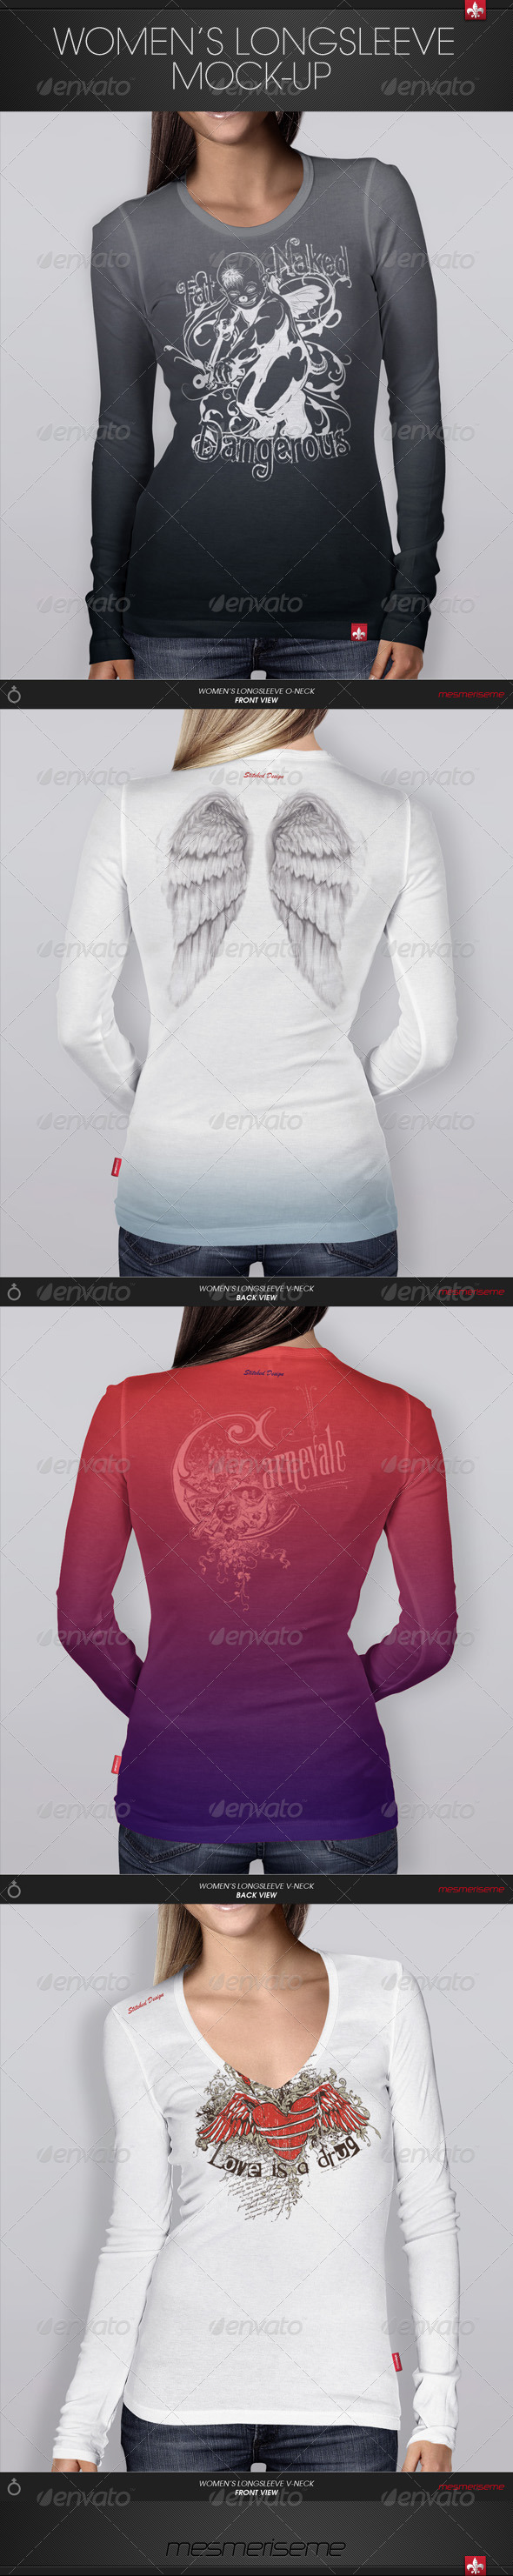 GraphicRiver Women s Longsleeve Mock-up 6158012